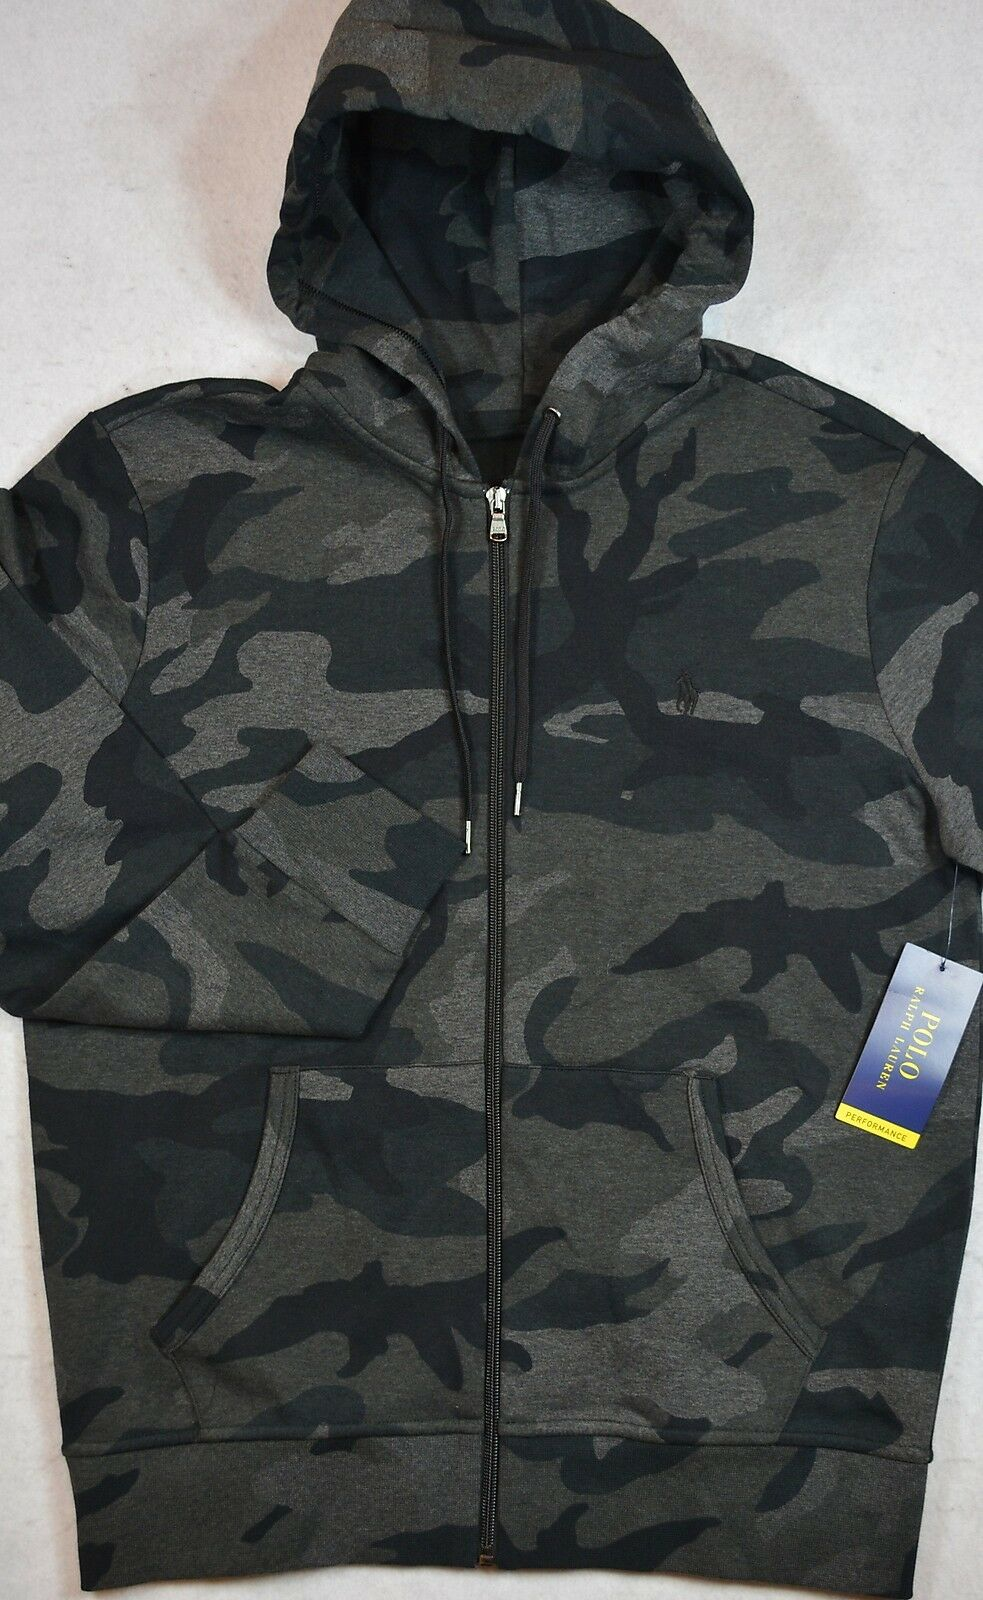 Polo Ralph Lauren Full Zip Grau grau Camo Performance Hoodie L NWT 125